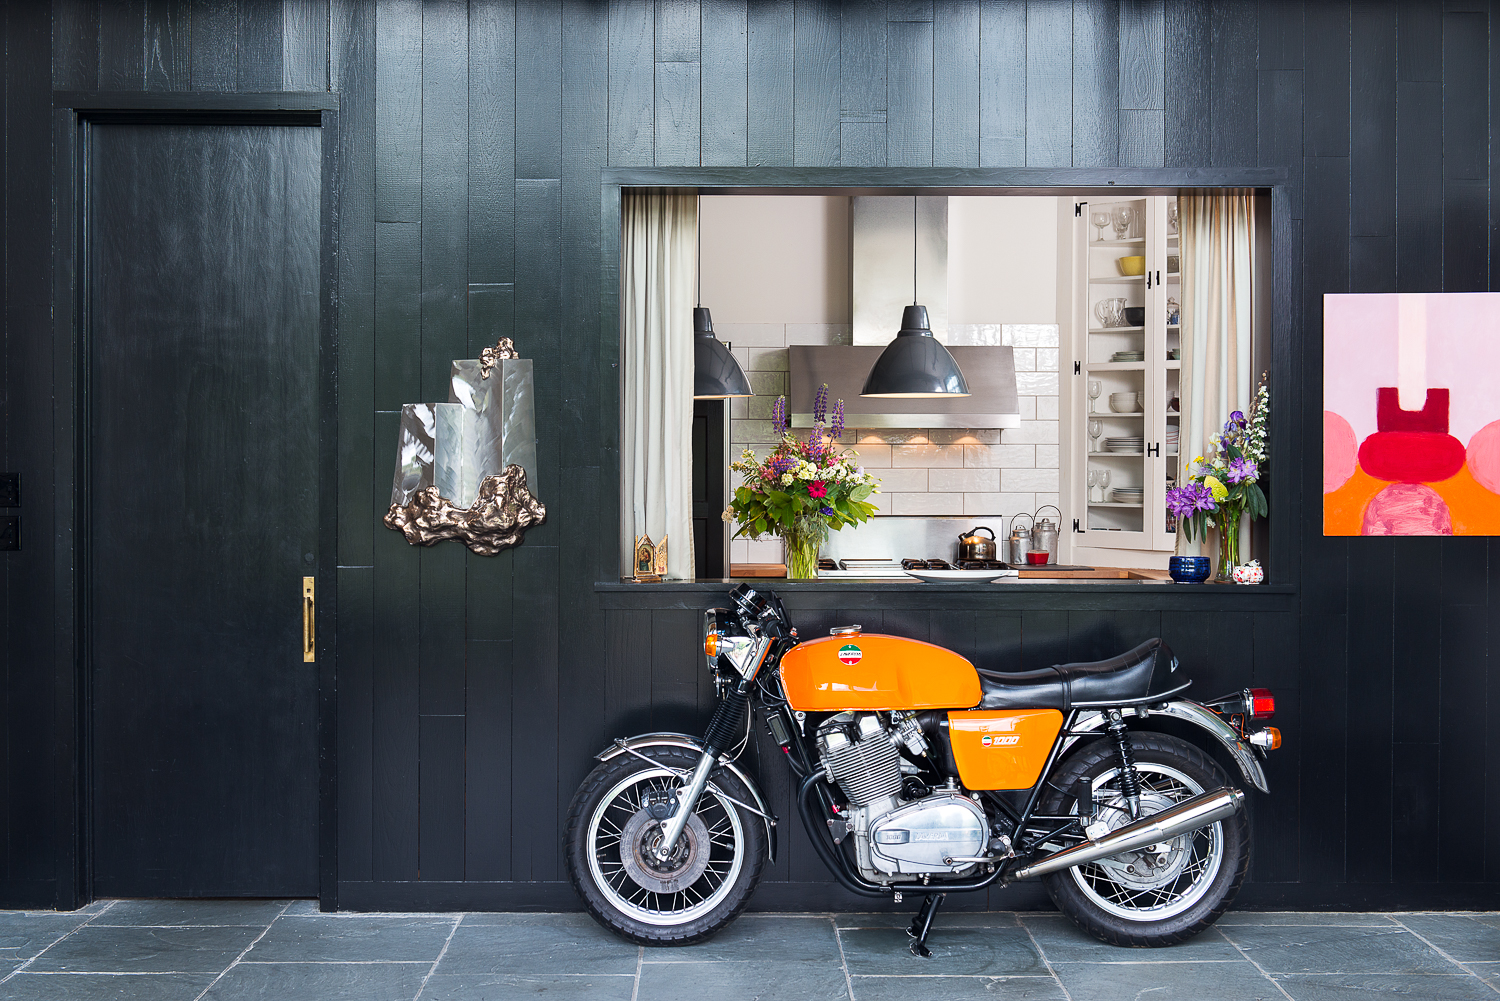 Entryway looking into the kitchen with a classic Laverda 1000 motorcycle.